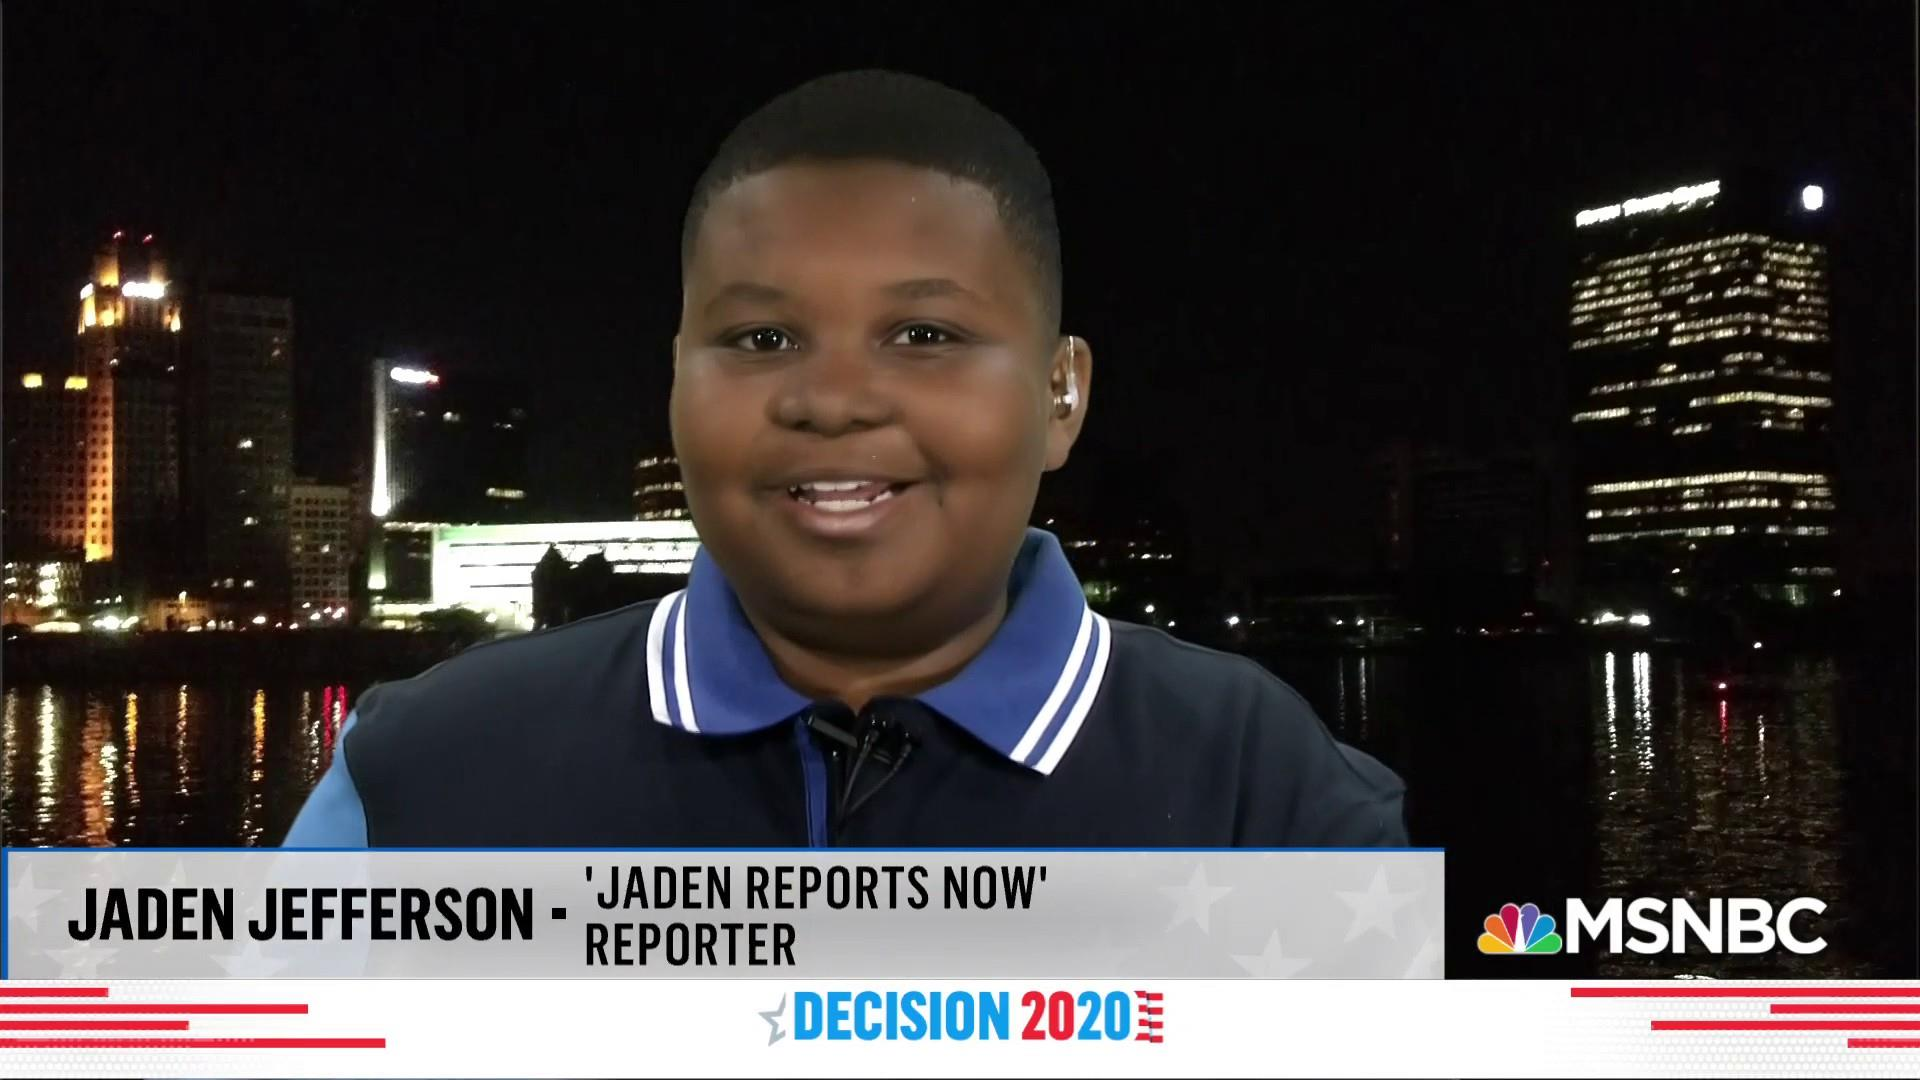 11-year-old takes political media world by storm